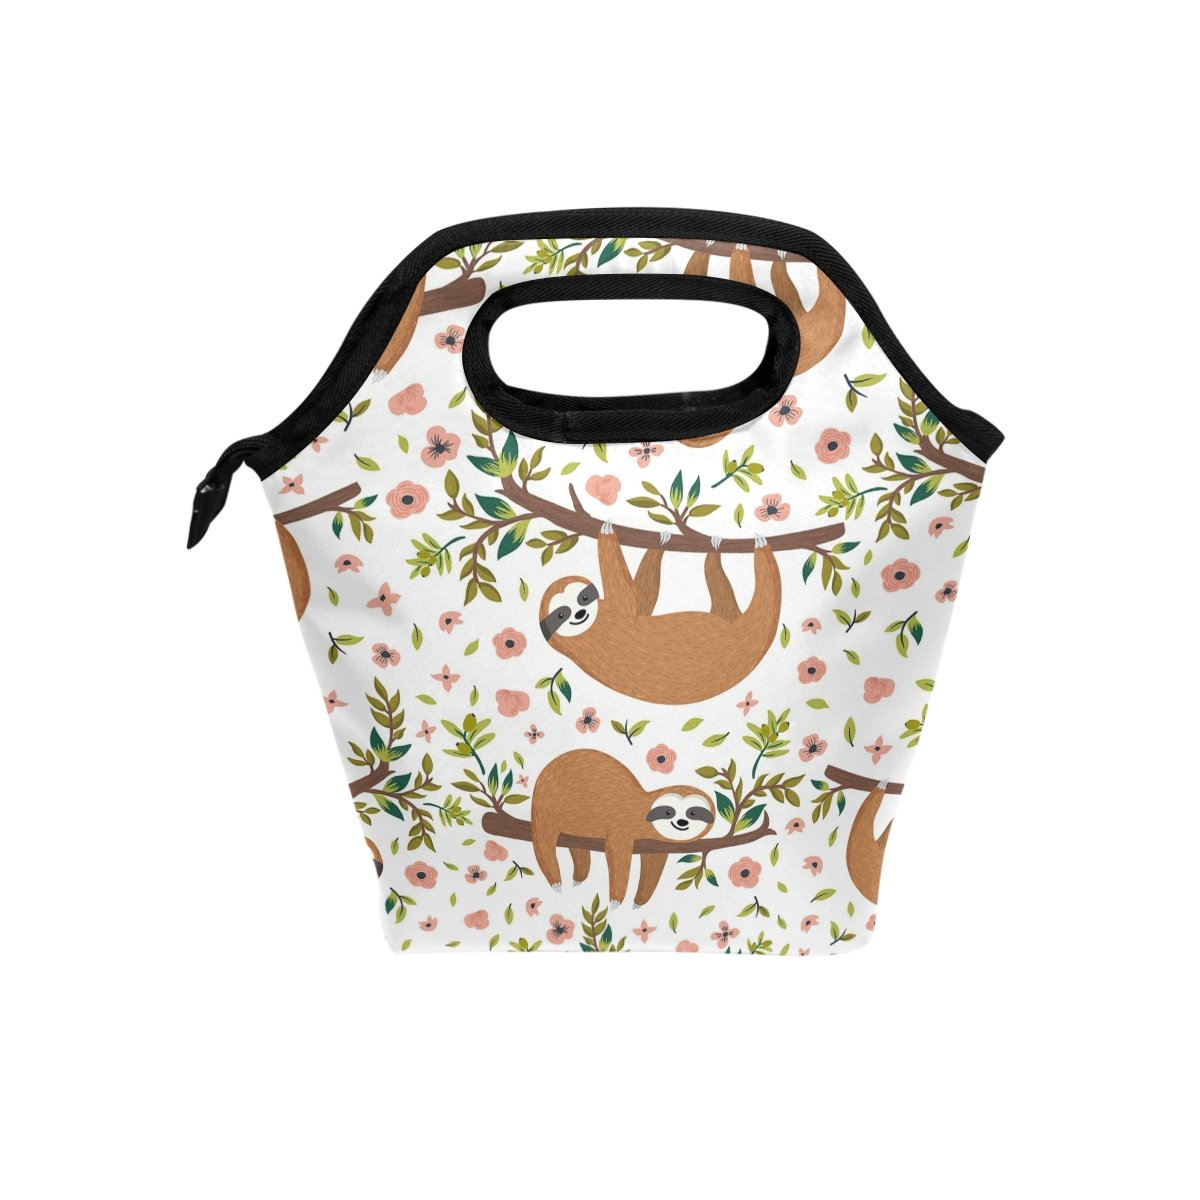 ALAZA Hand Drawn Baby Sloth With Flowers Branch Animal Waterproof Reusable Durable Insulated Lunch Boxes for Women Teen Girls Lunch Bag Box Tote for School Work Office Picnic Travel Mom Bag